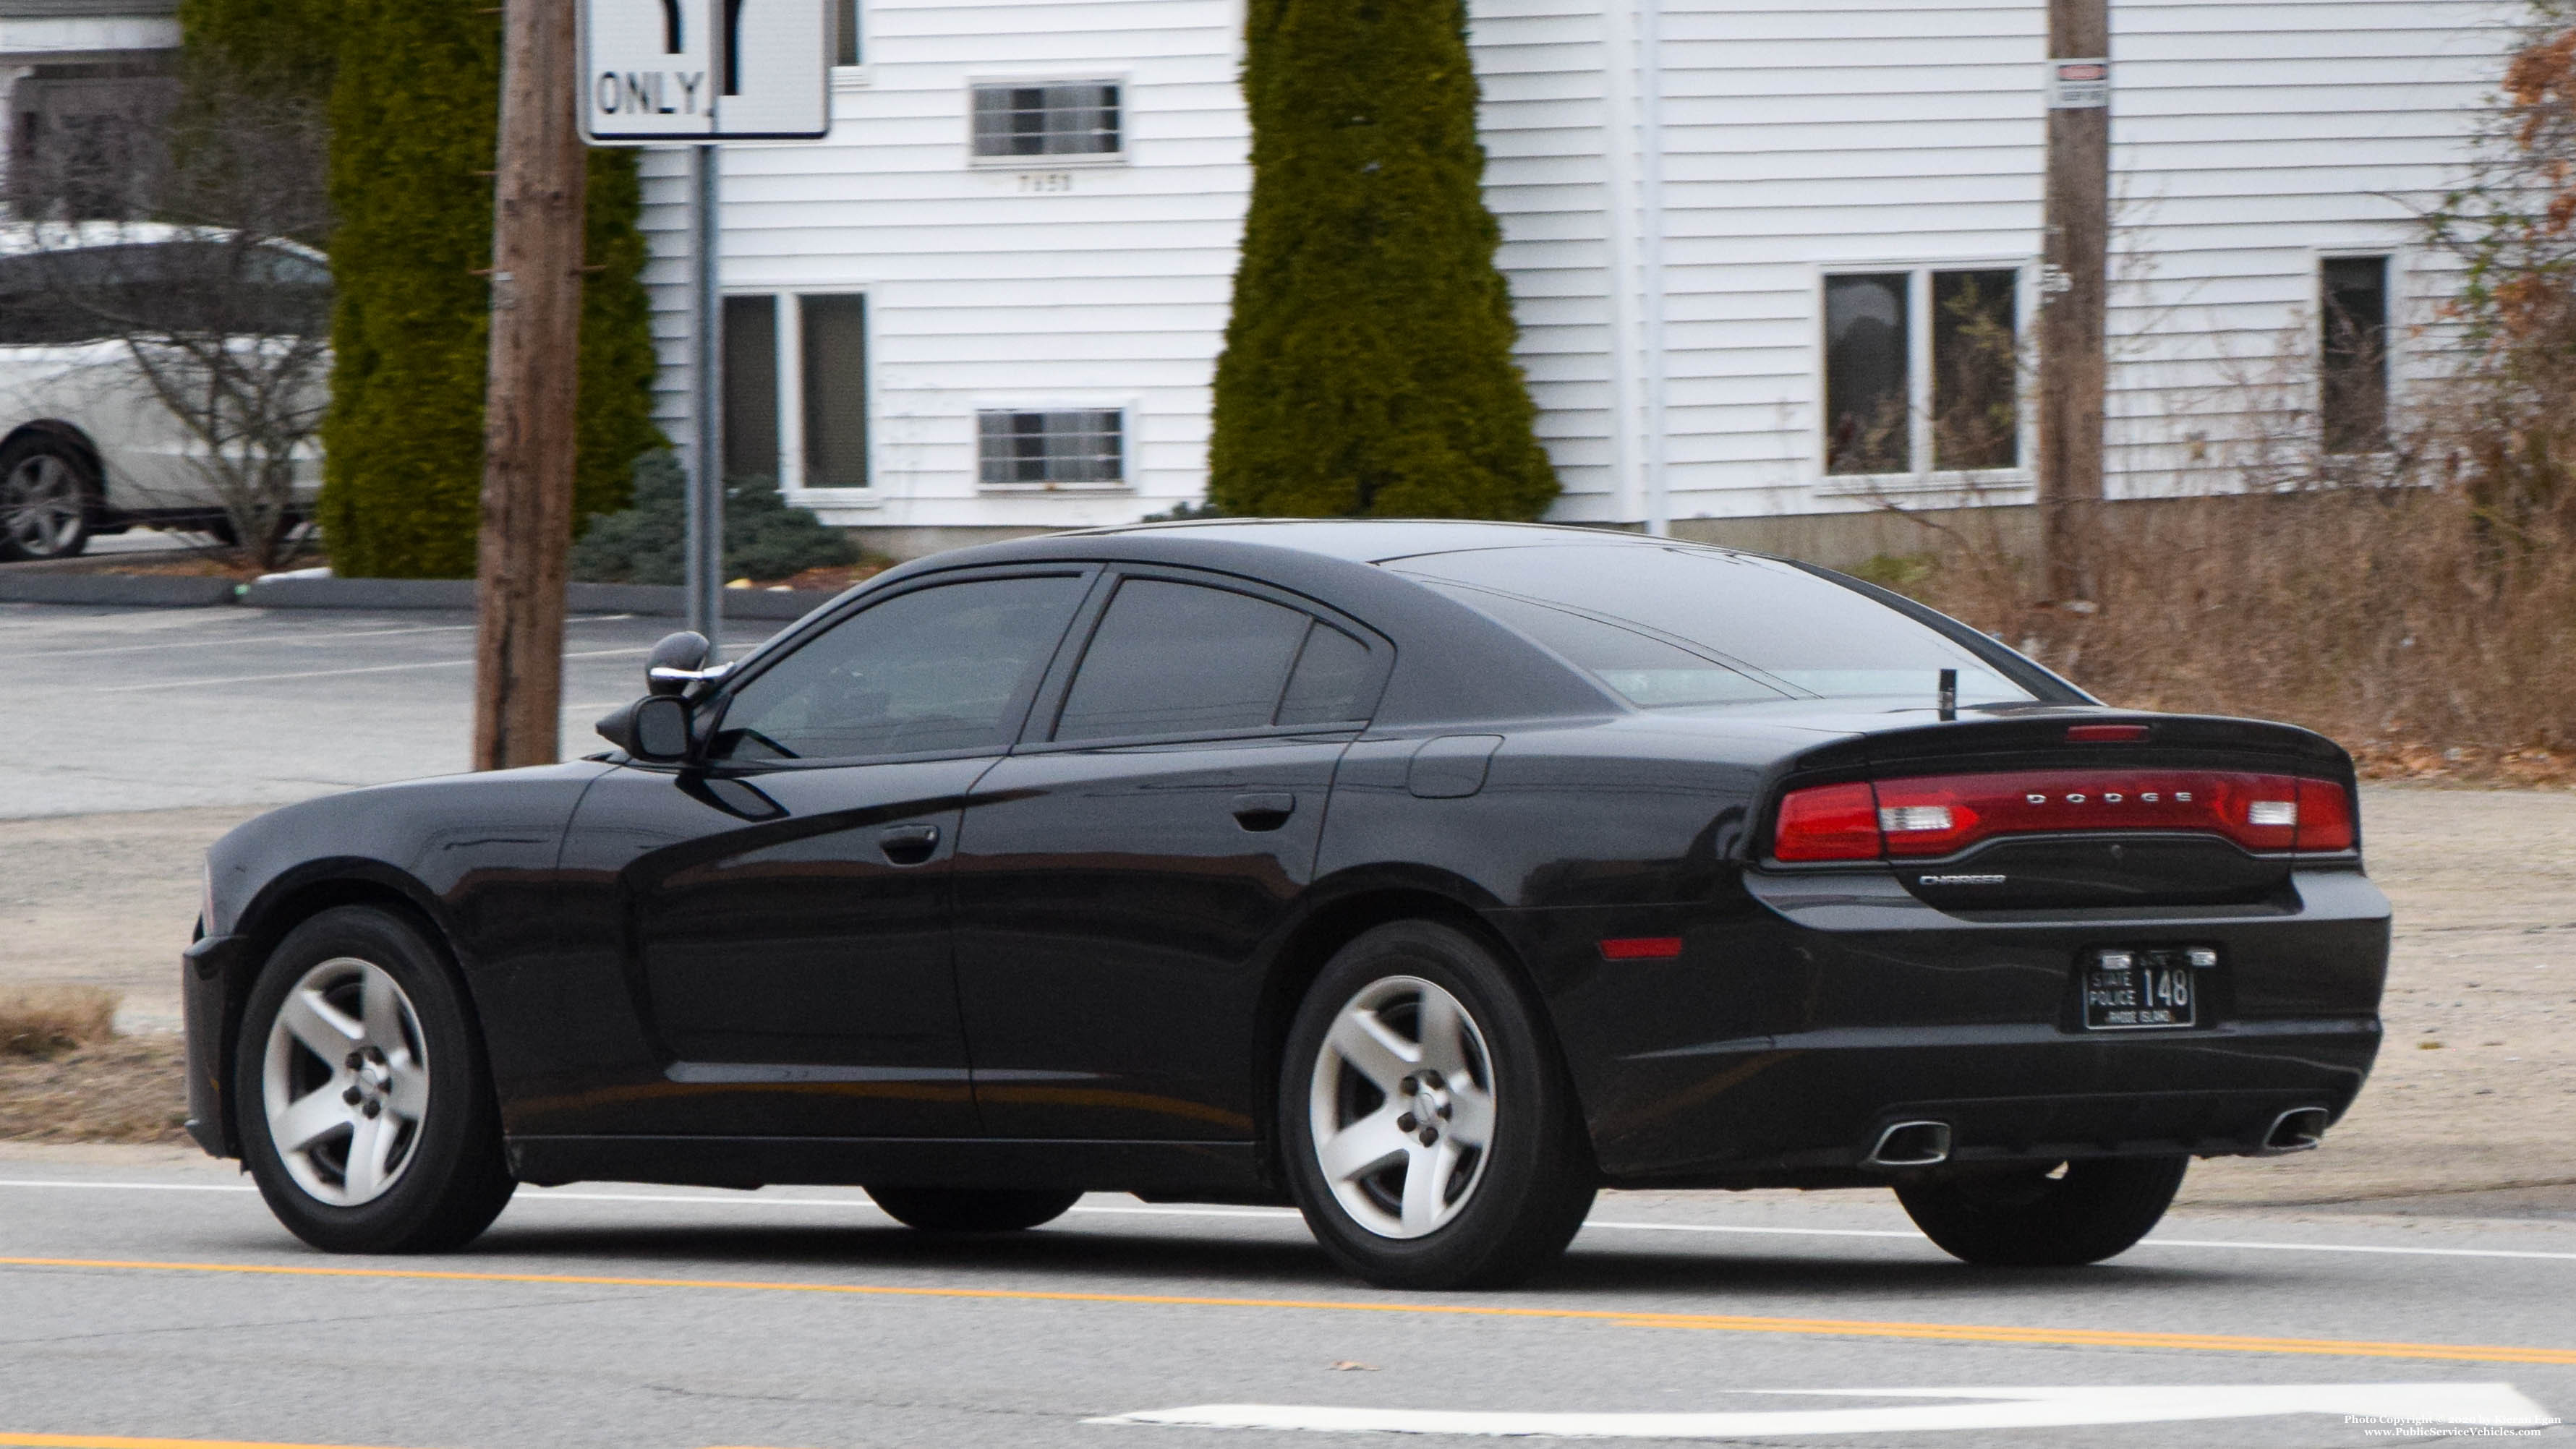 A photo  of Rhode Island State Police             Cruiser 148, a 2013 Dodge Charger             taken by Kieran Egan